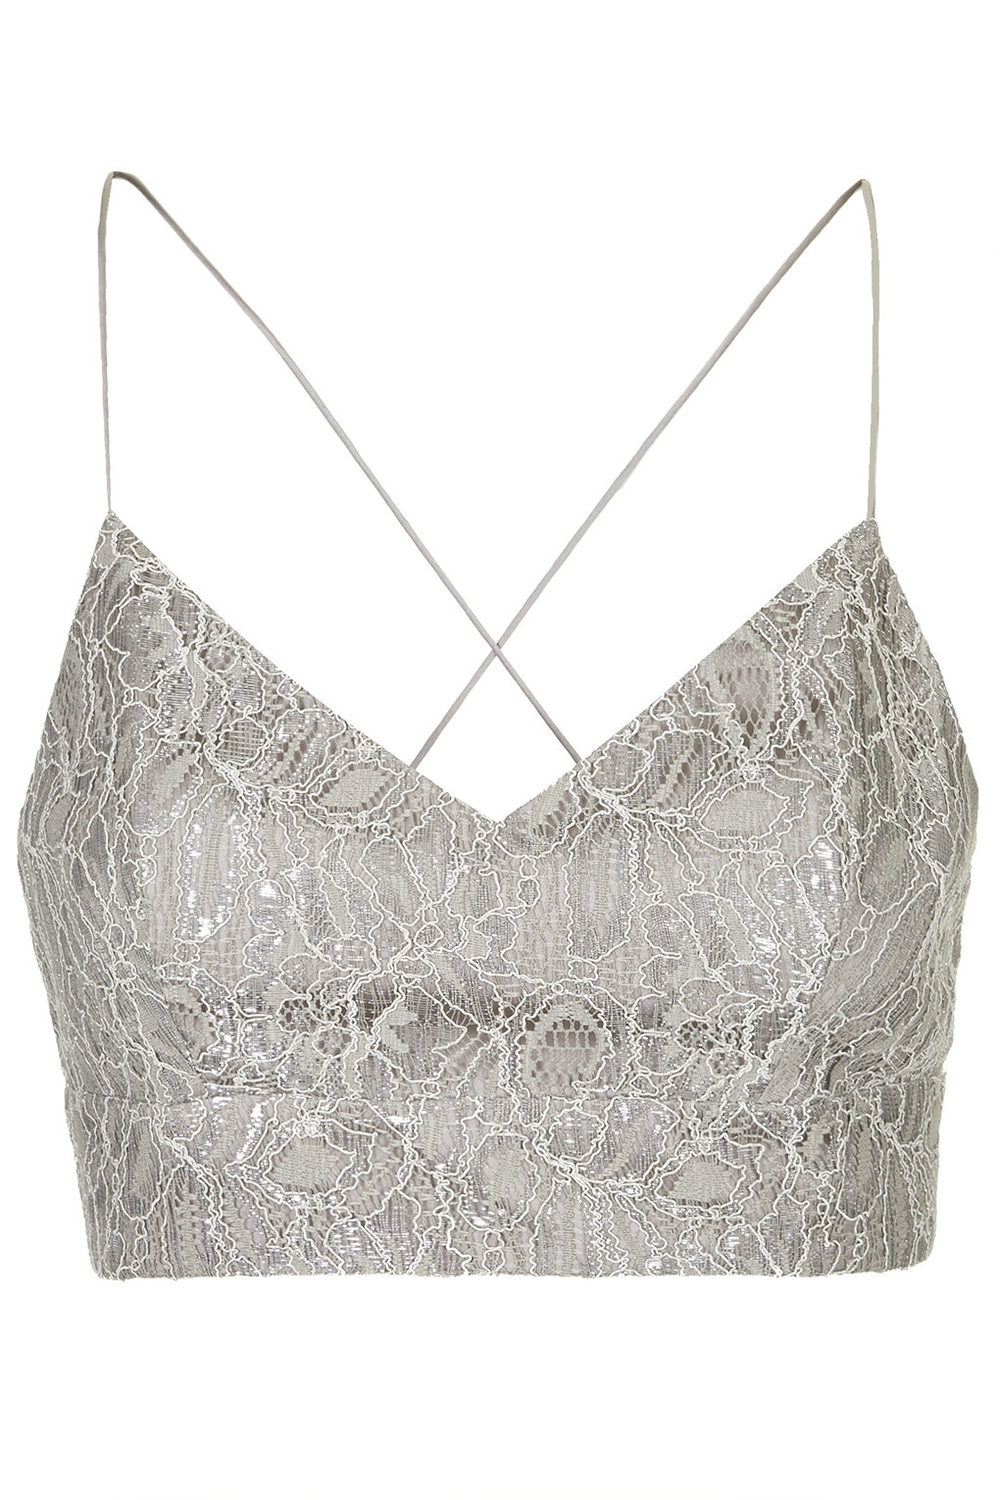 LACE LUREX BRALET   $35.00